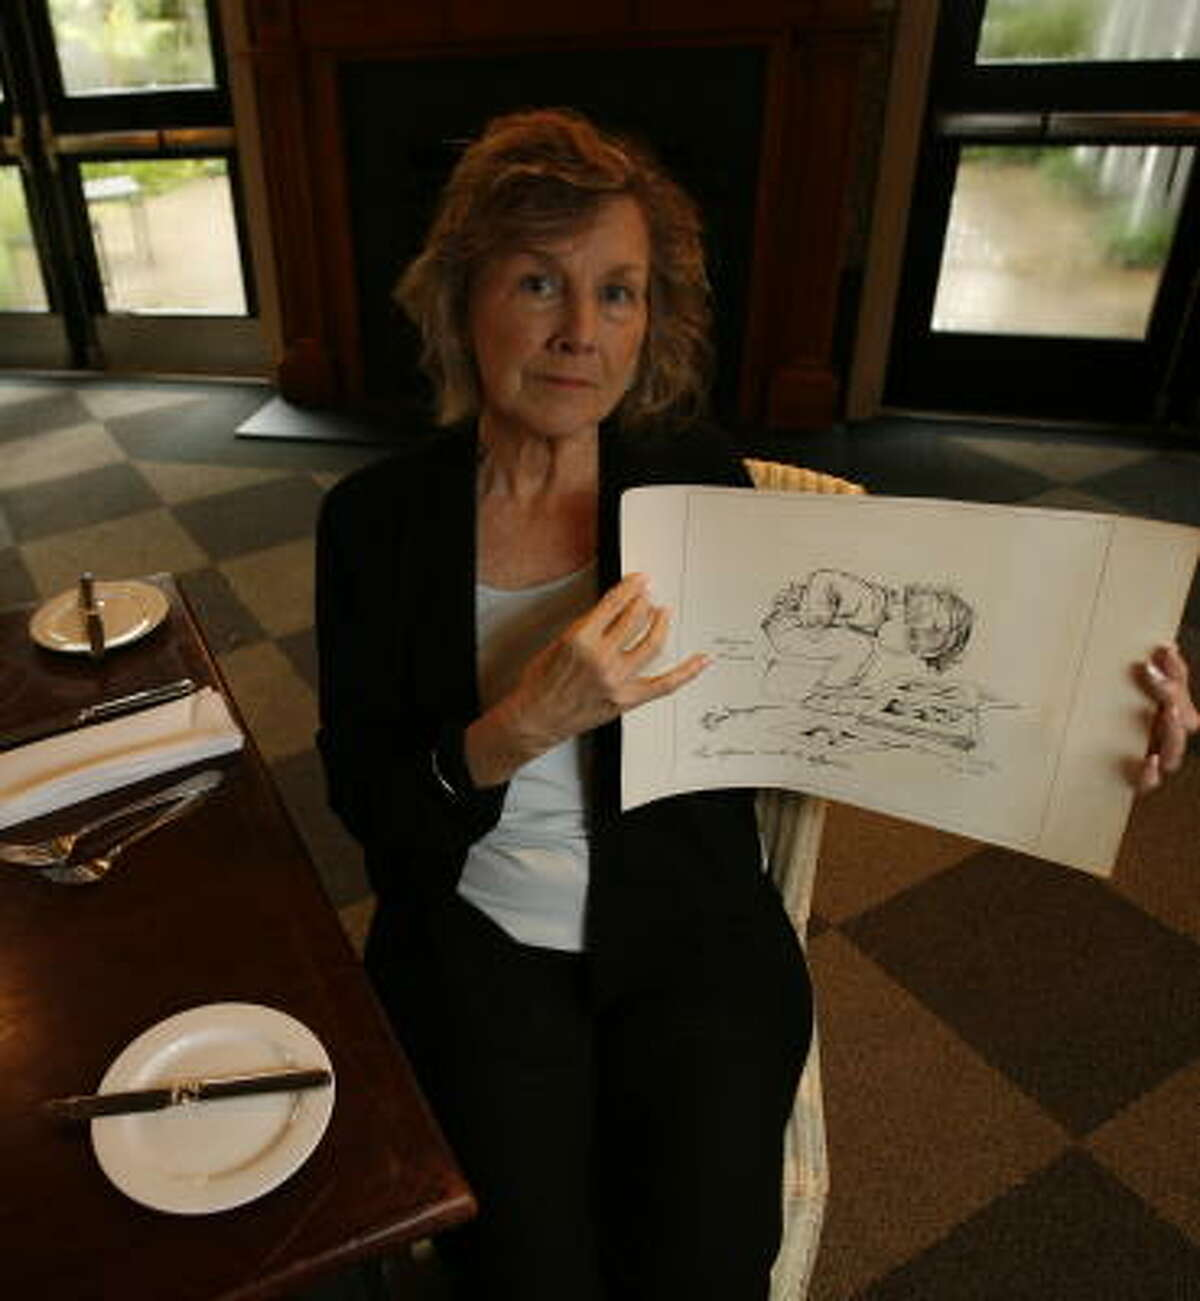 Elouise Adams Jones, owner of Ouisie's Table in Houston, holds a replica of an original print that was stolen from her restaurant. It once hung on the door of the women's rest room.